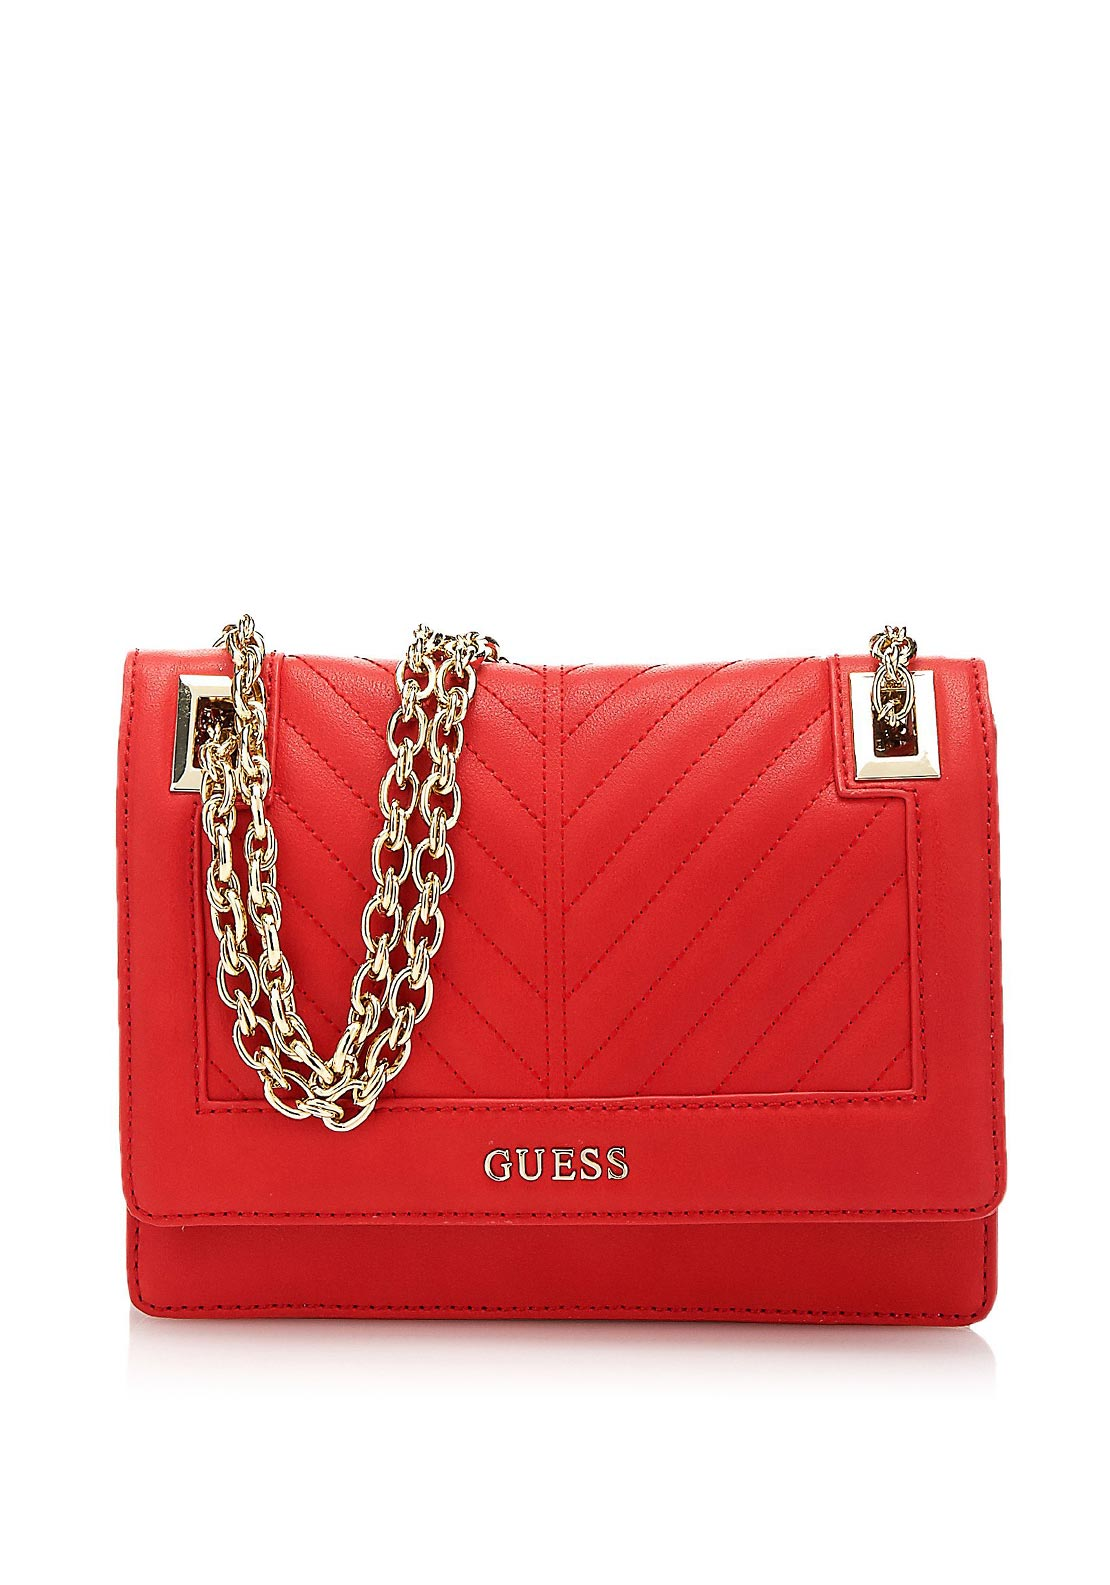 Guess Addison Convertible Crossbody Bag, Red